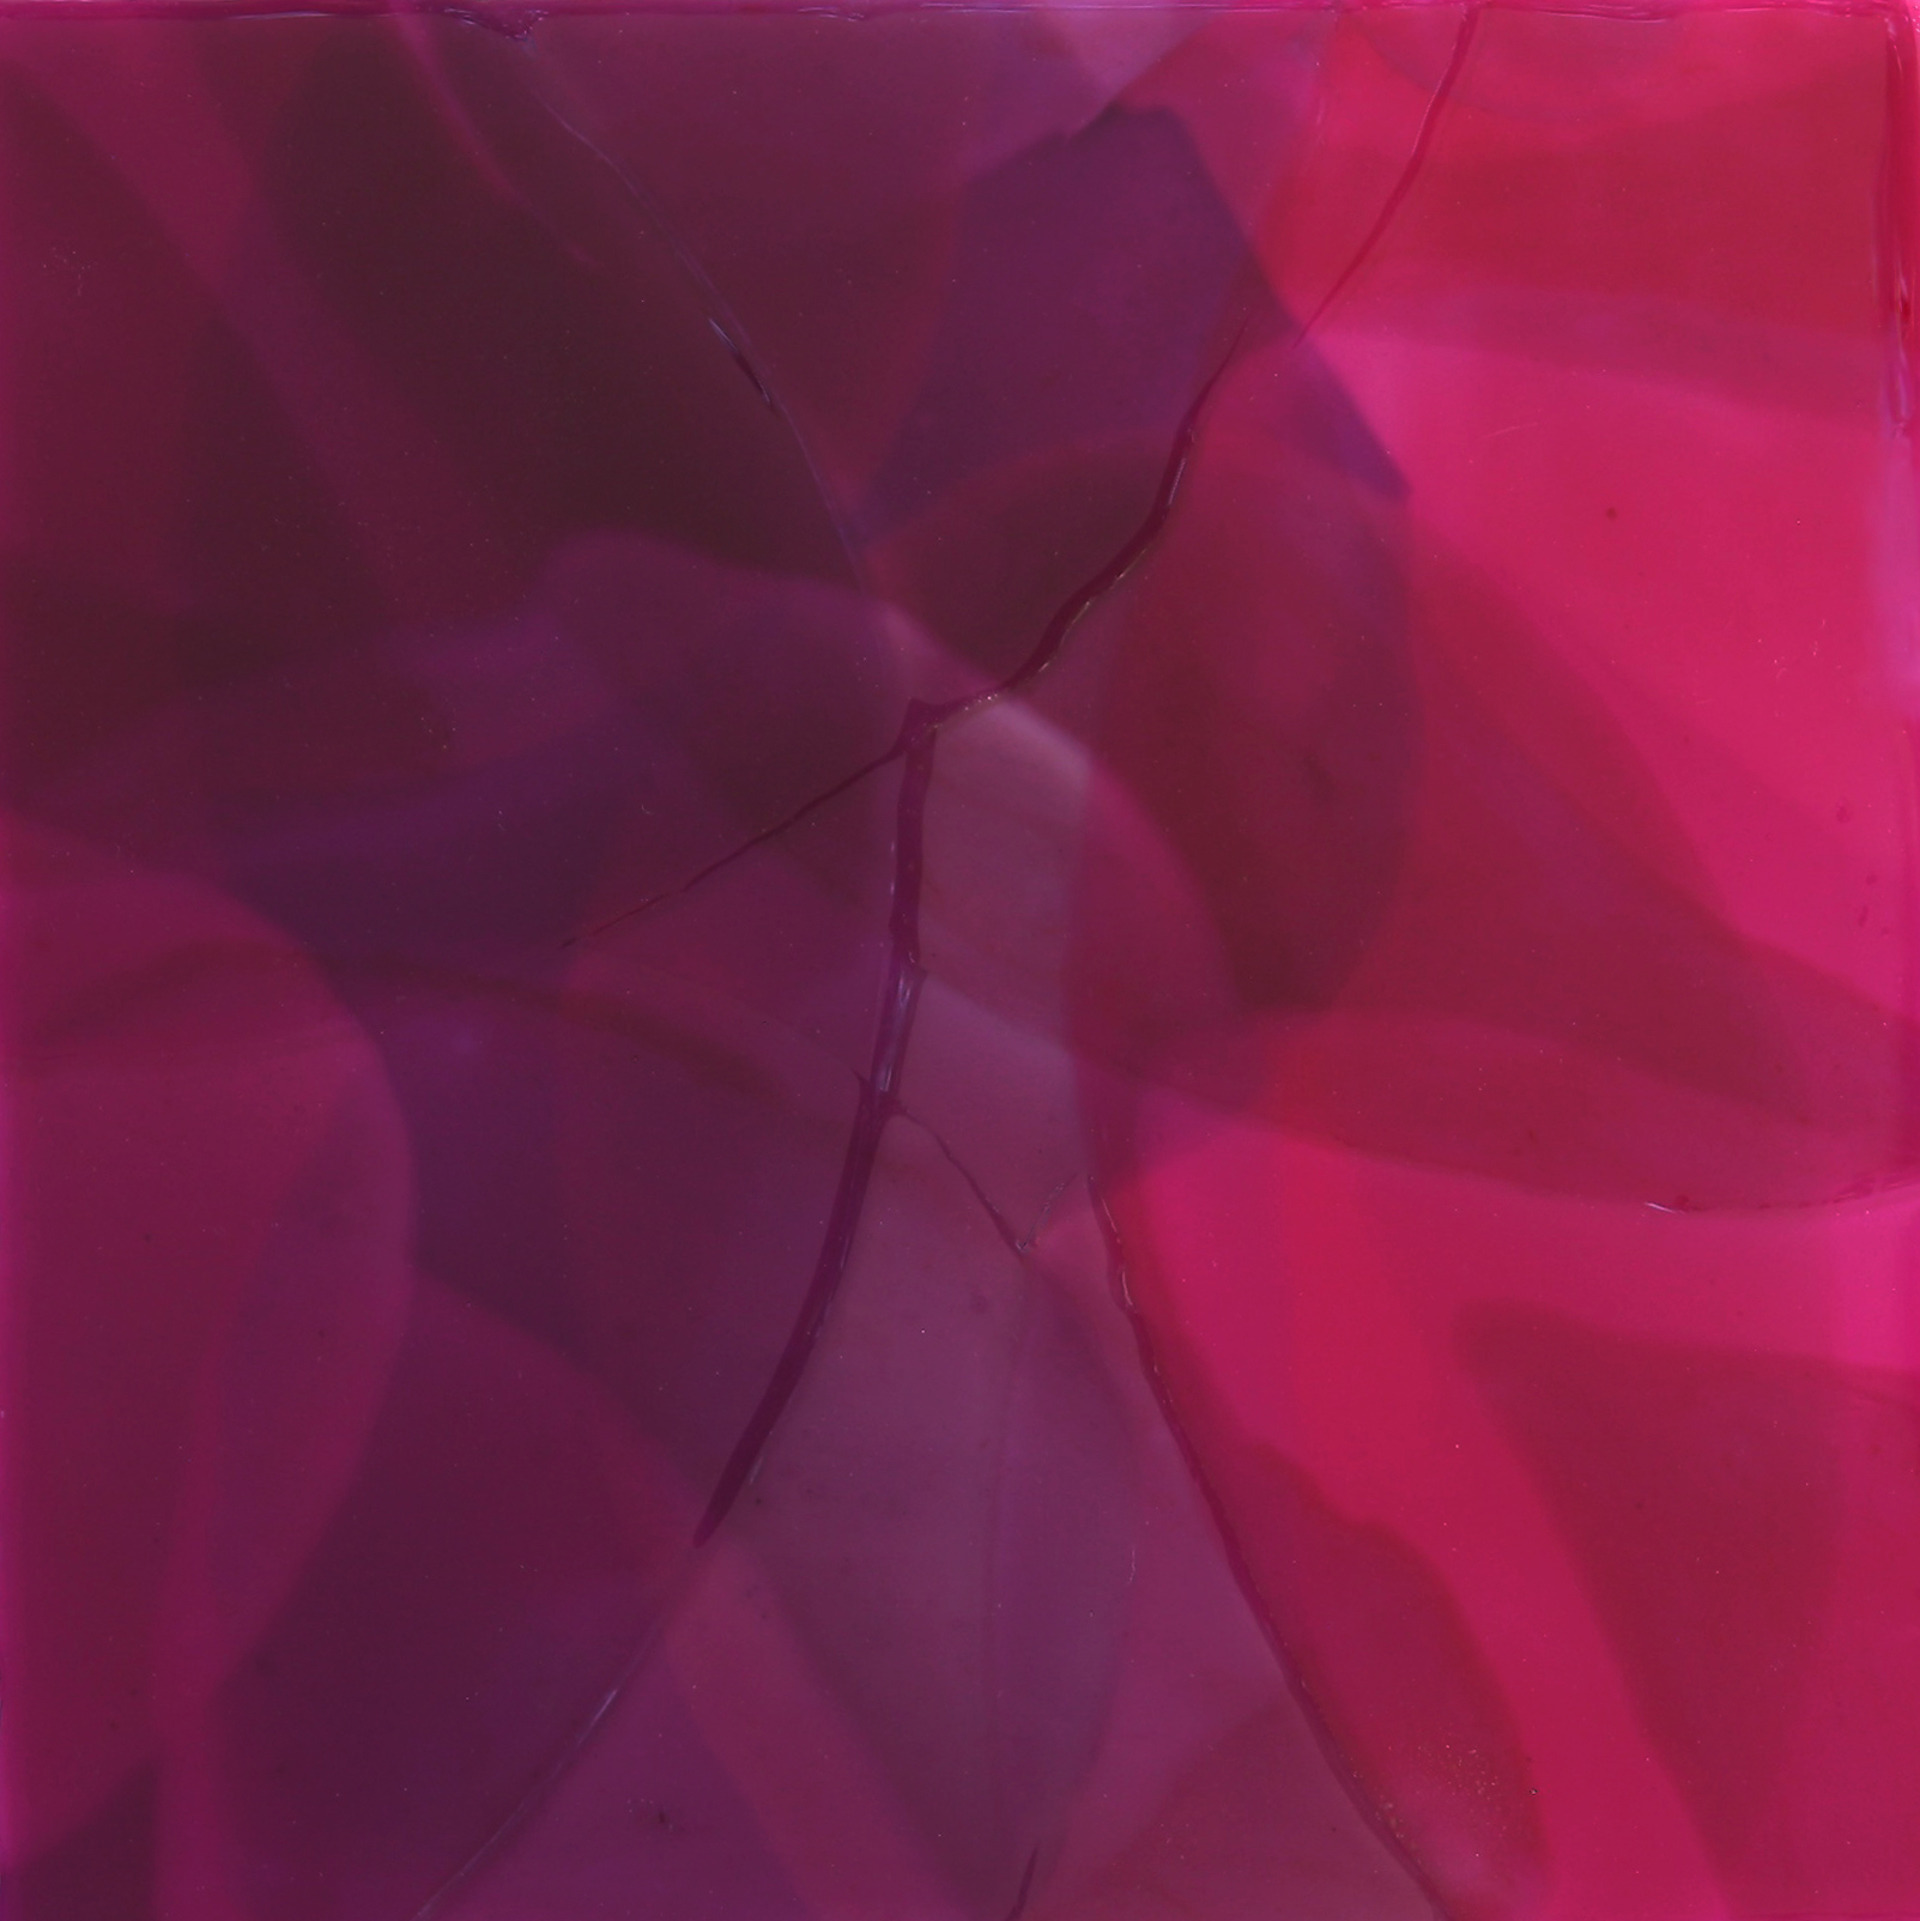 Red-Violet Square by Farida Hughes